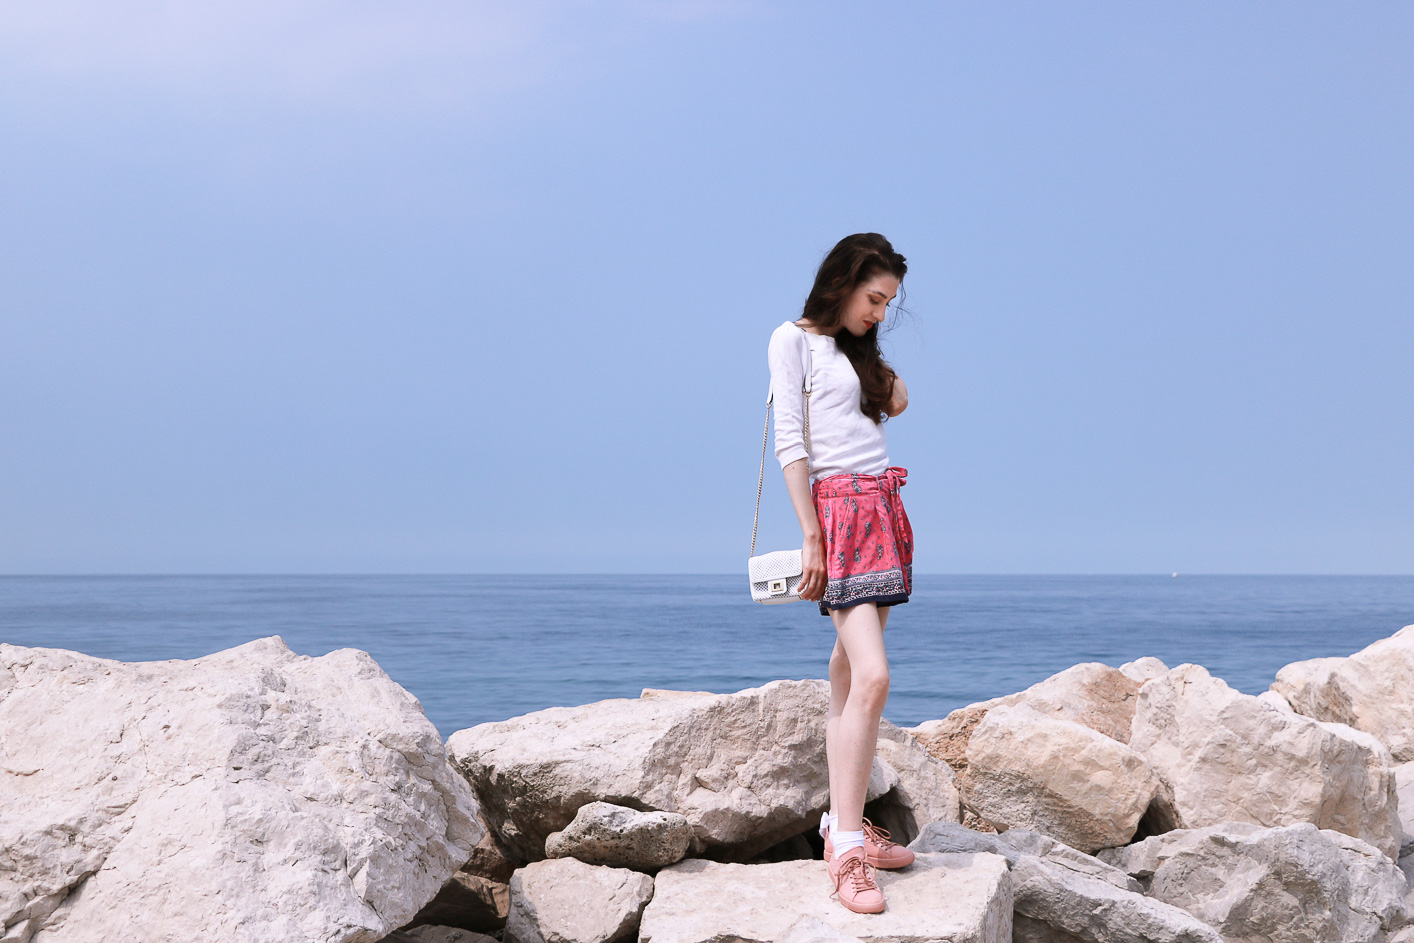 Fashion blogger Veronika Lipar of Brunette From Wall Street on her Sunday trip to Piran Slovenia dressed in silk shorts, pale pink sneakers and white shoulder bag